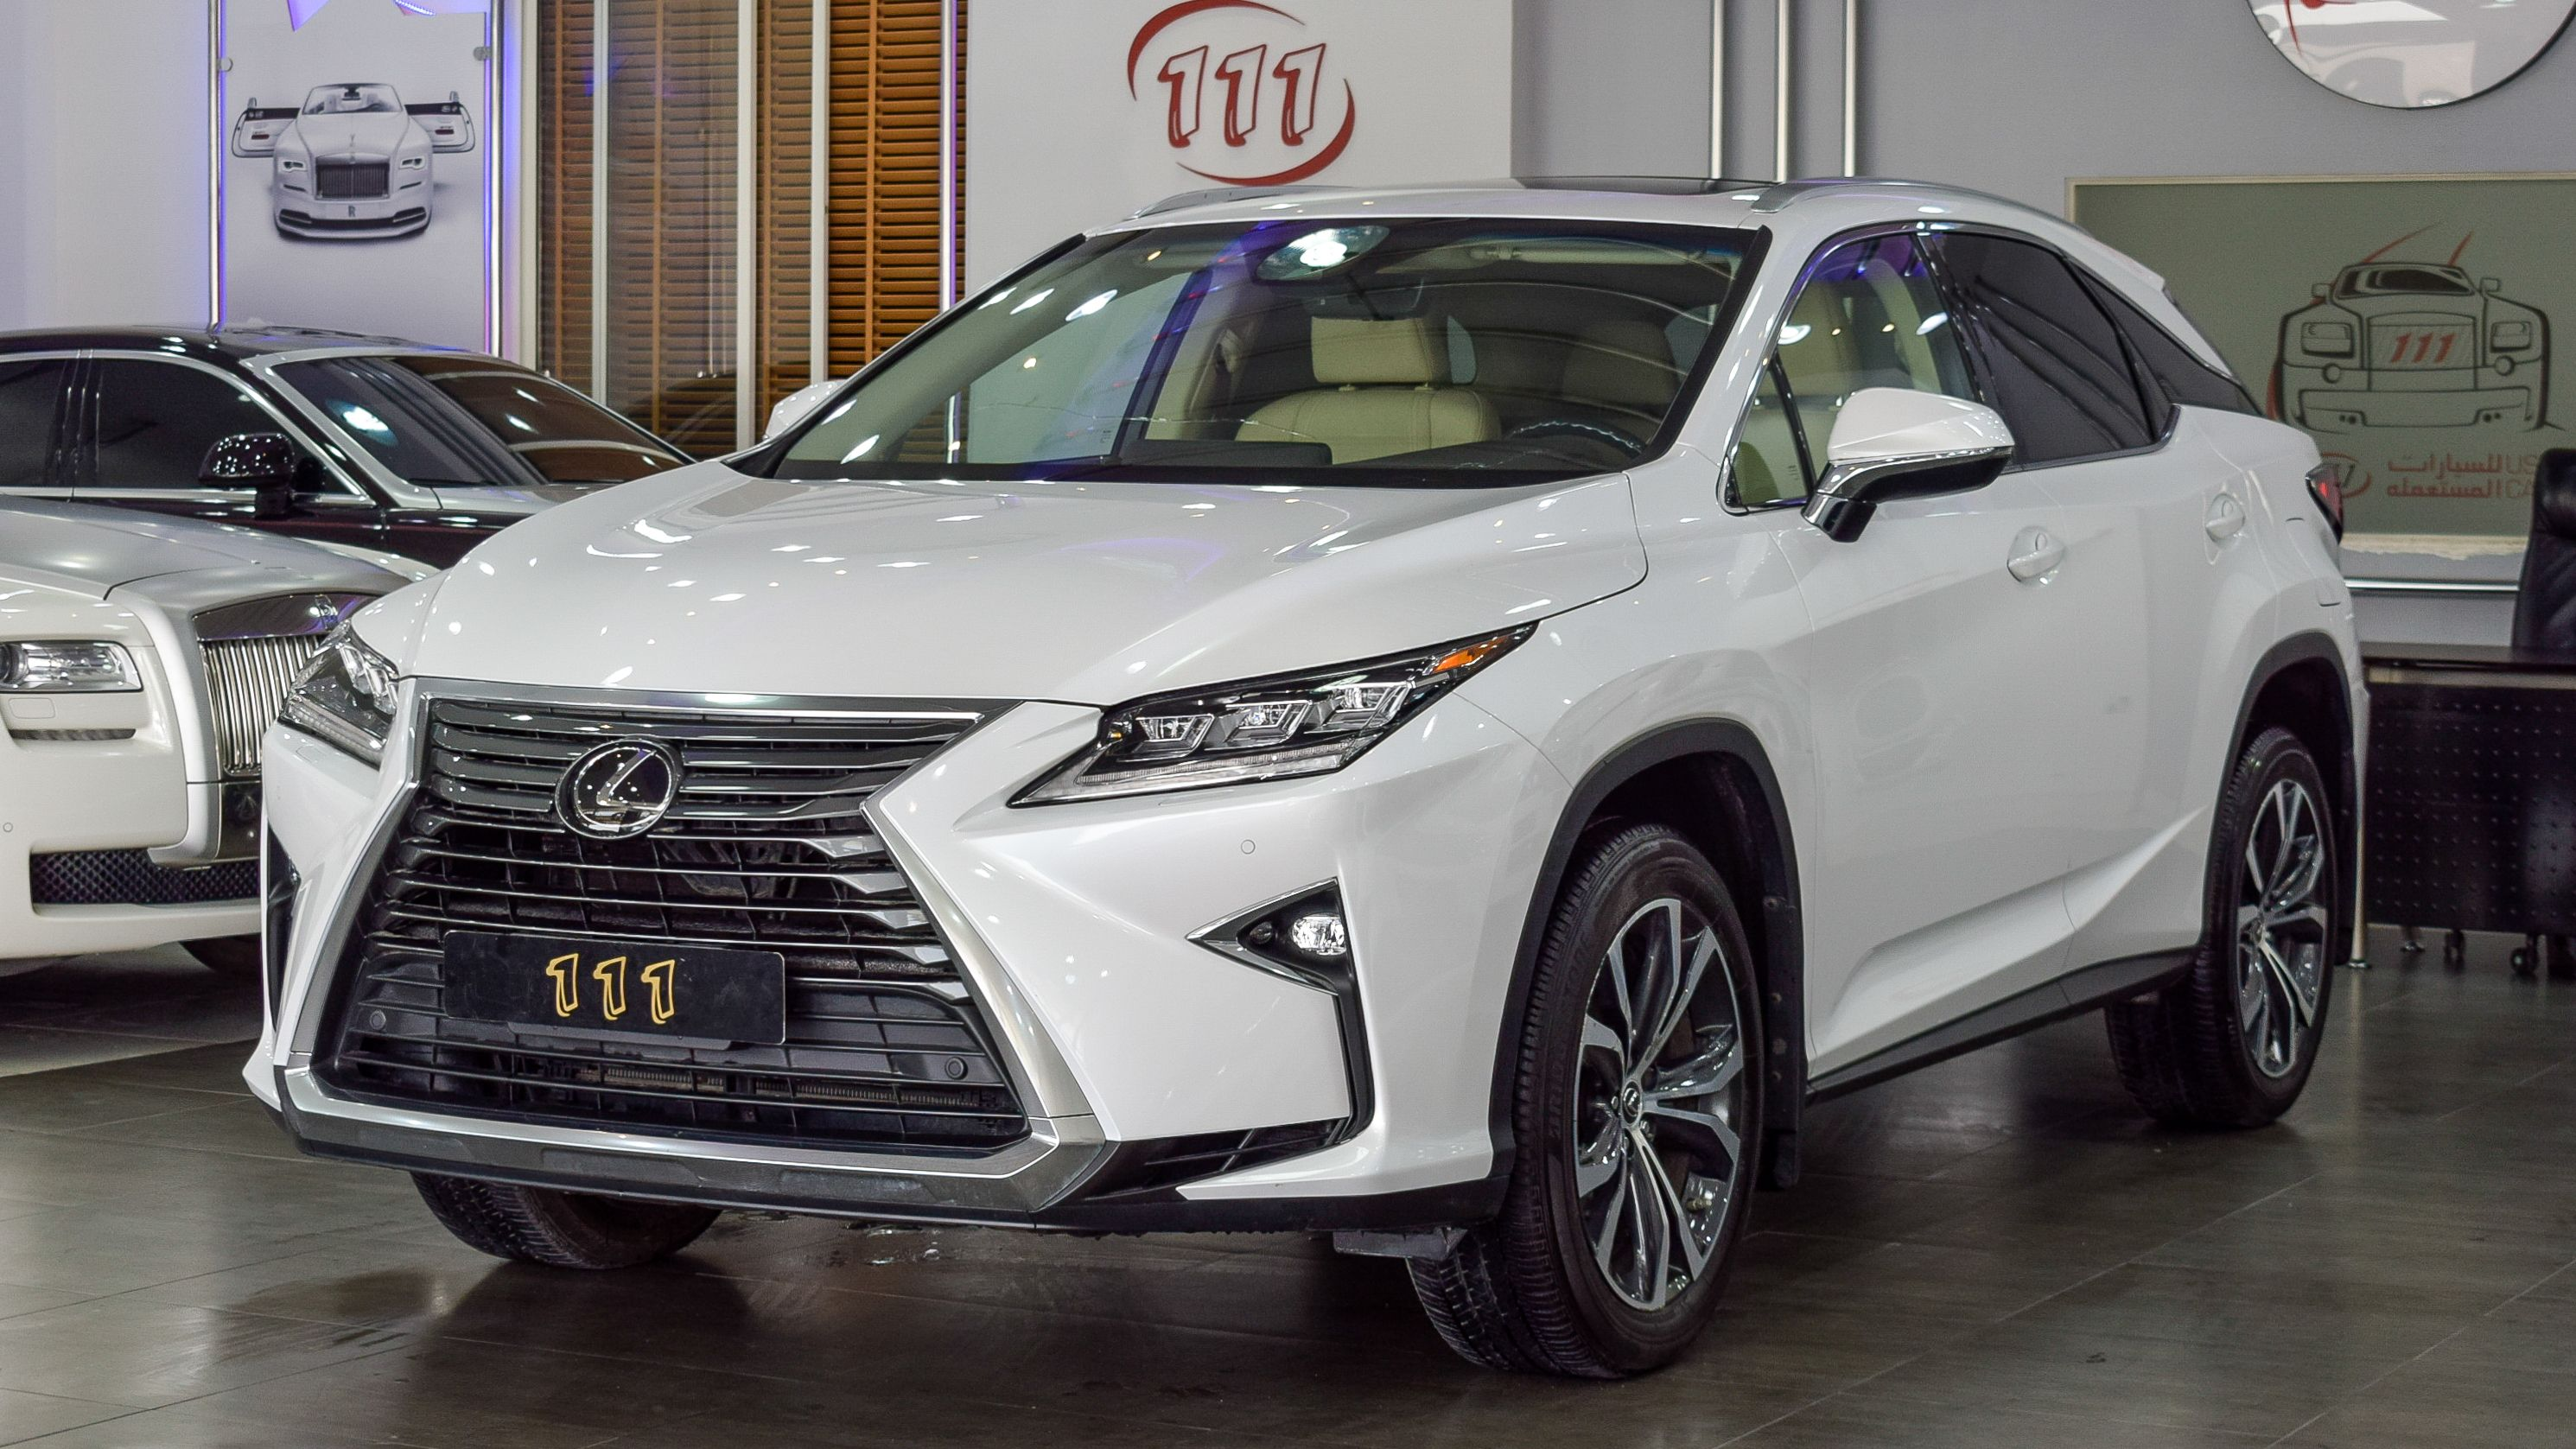 Model Lexus Rx 350 Year 2019 Km 10 000 Uae Dirham Price 159 000 Aed For More Details And Price About Our Cars Please Do Not In 2020 Lexus Rx 350 Lexus Car